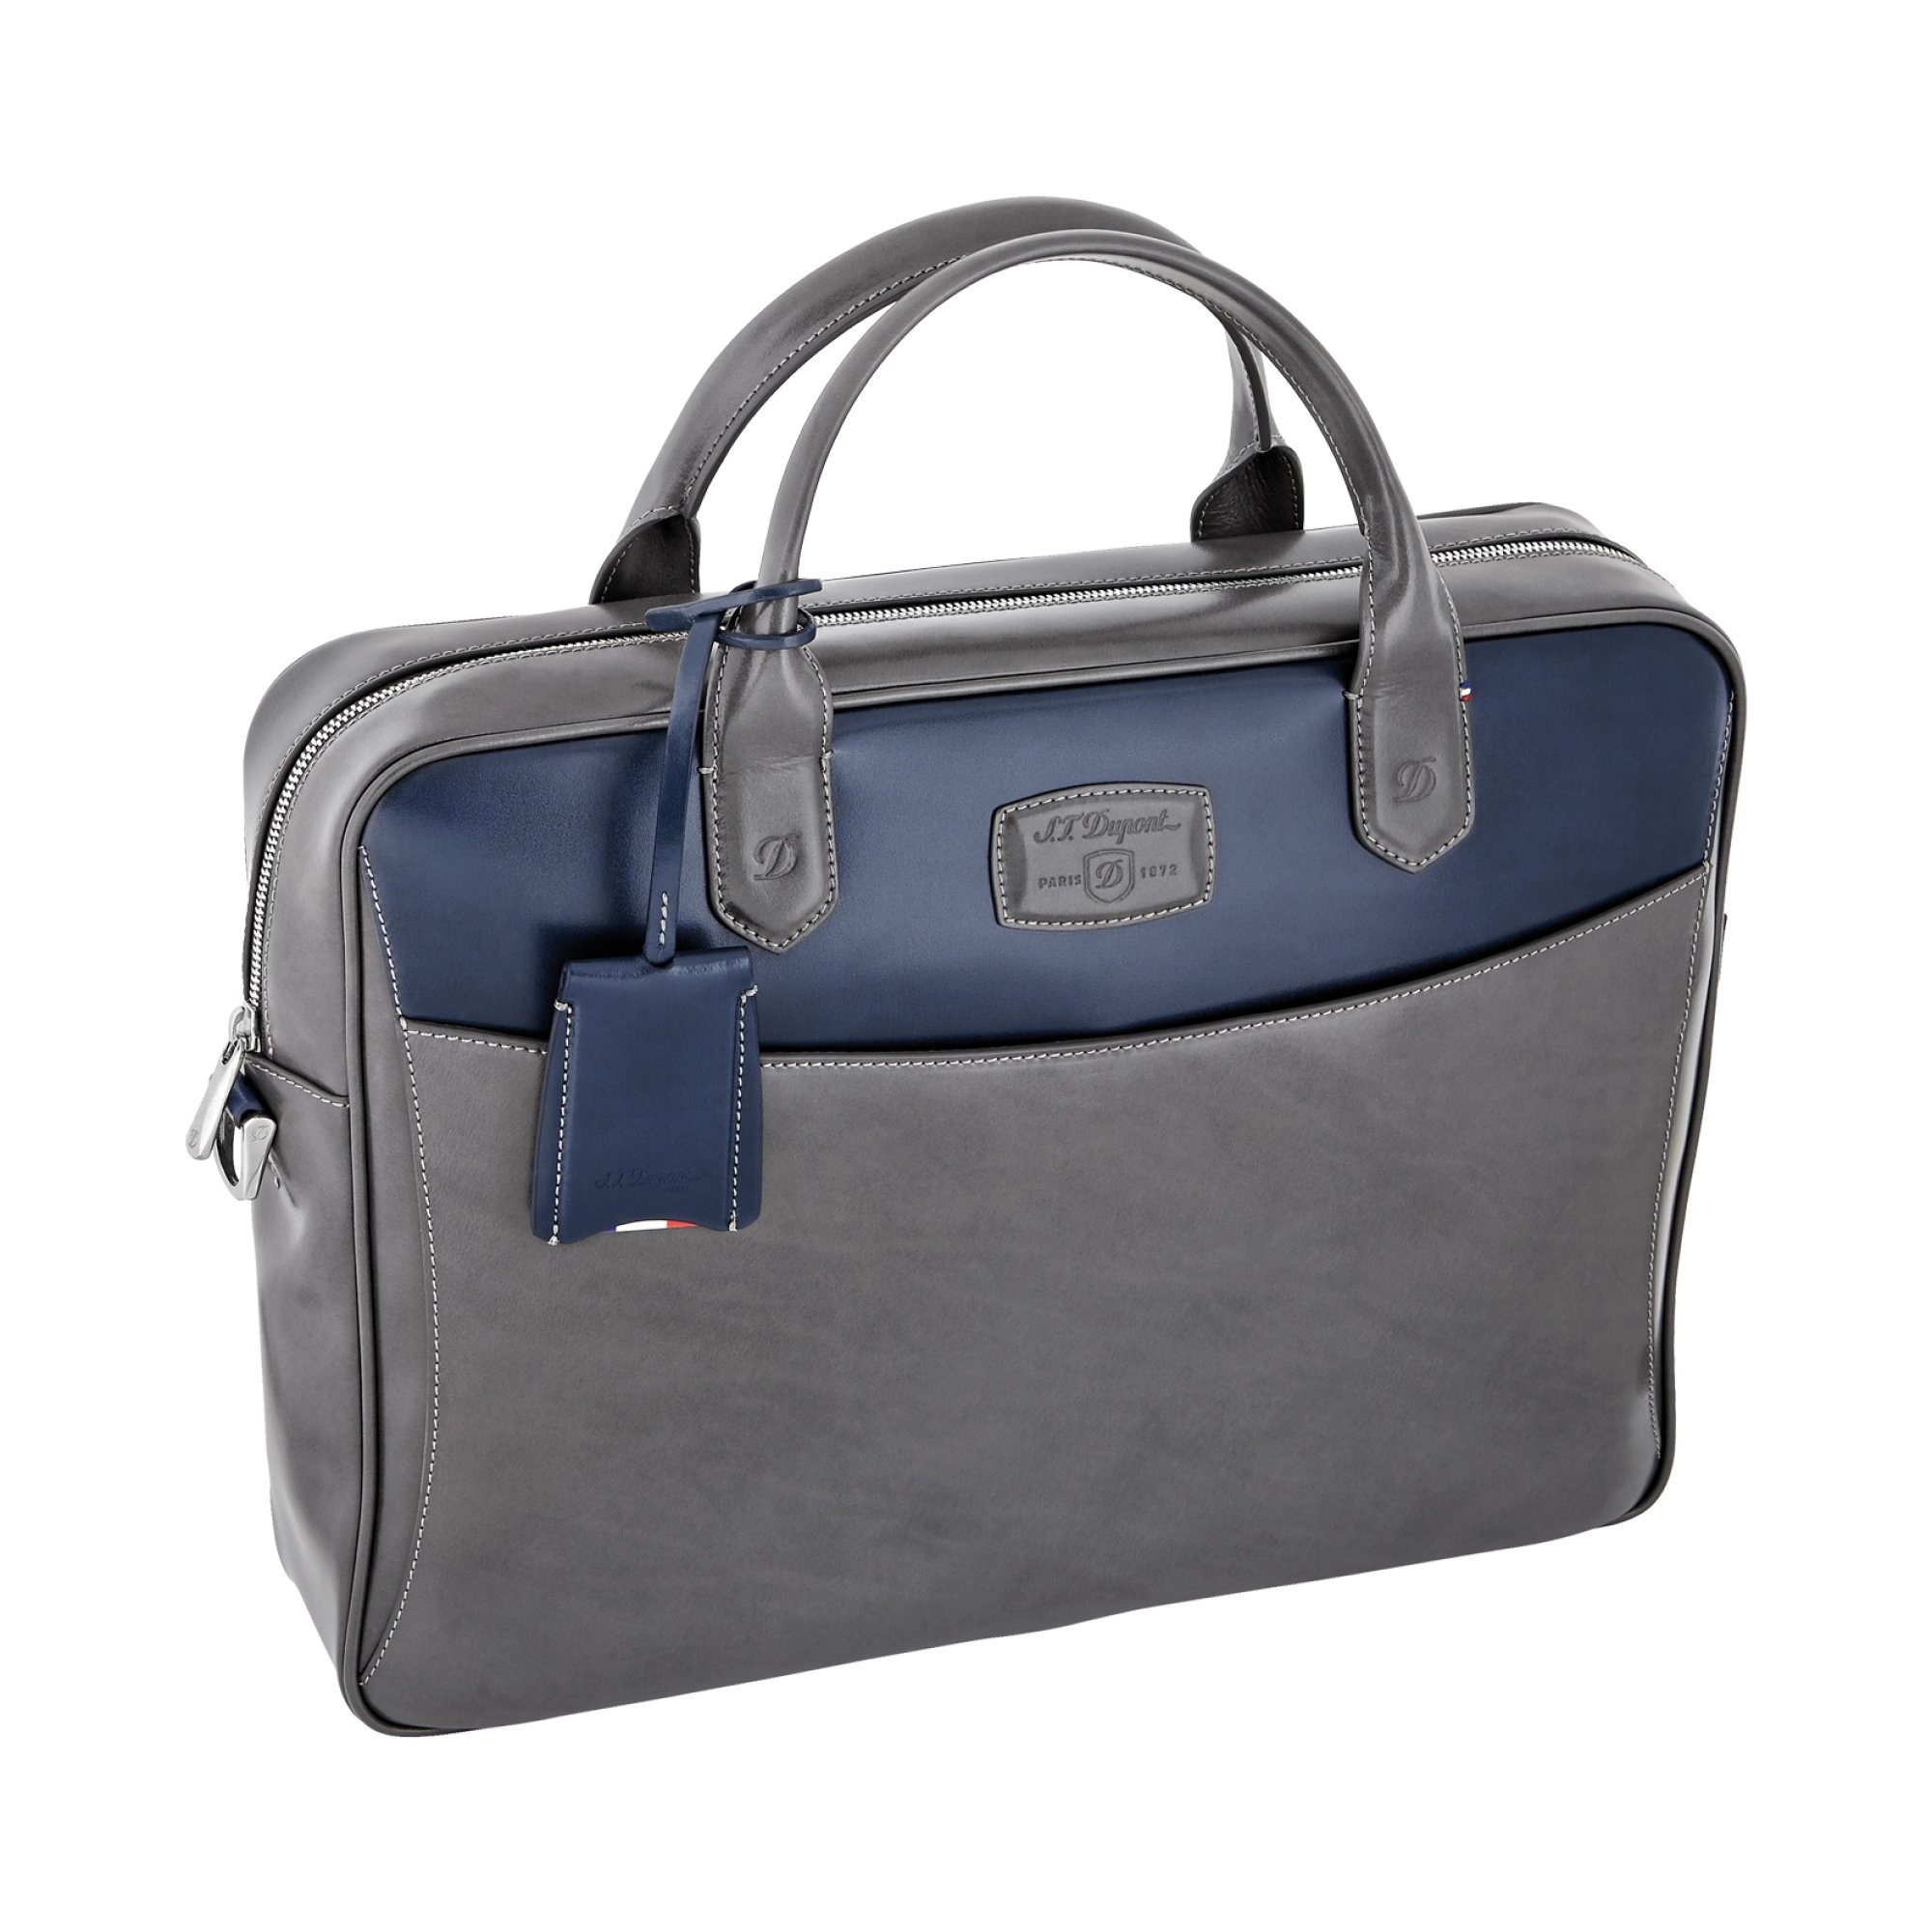 S.T. Dupont 181590 Line D Navy Blue/Grey Document Holder by S.T. Dupont